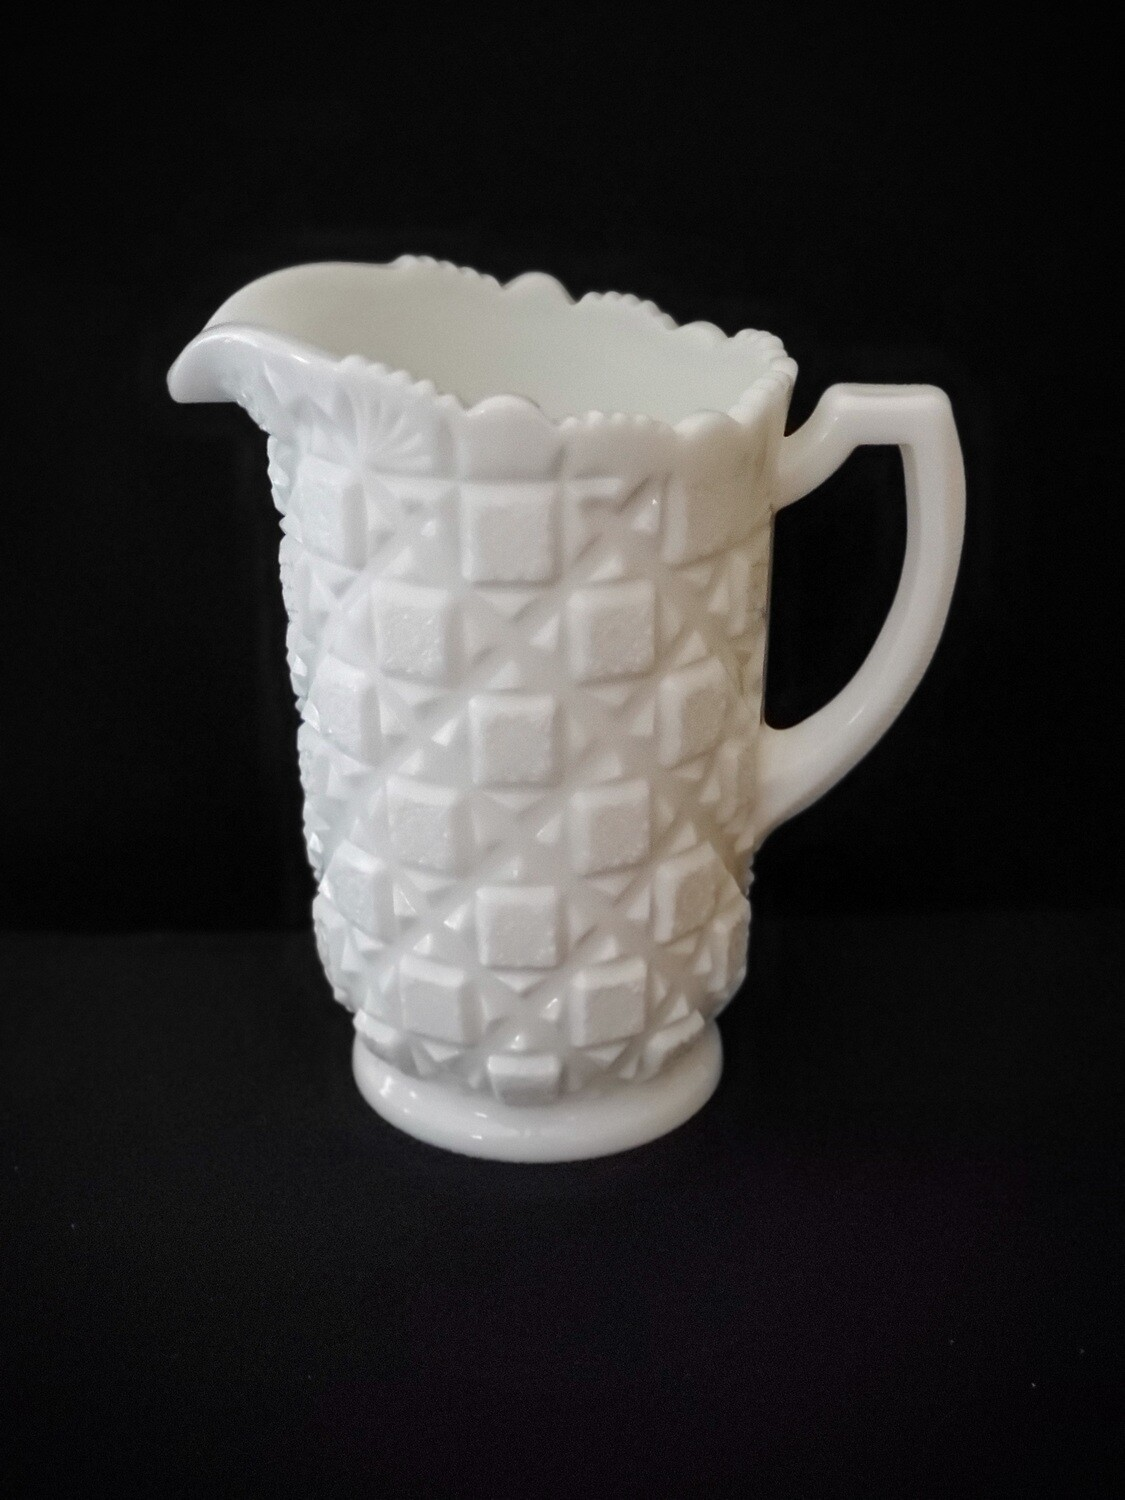 "Vintage WESTMORELAND 40 Oz., Water Pitcher 8"" OLD QUILT White Milk Glass by Westmoreland"